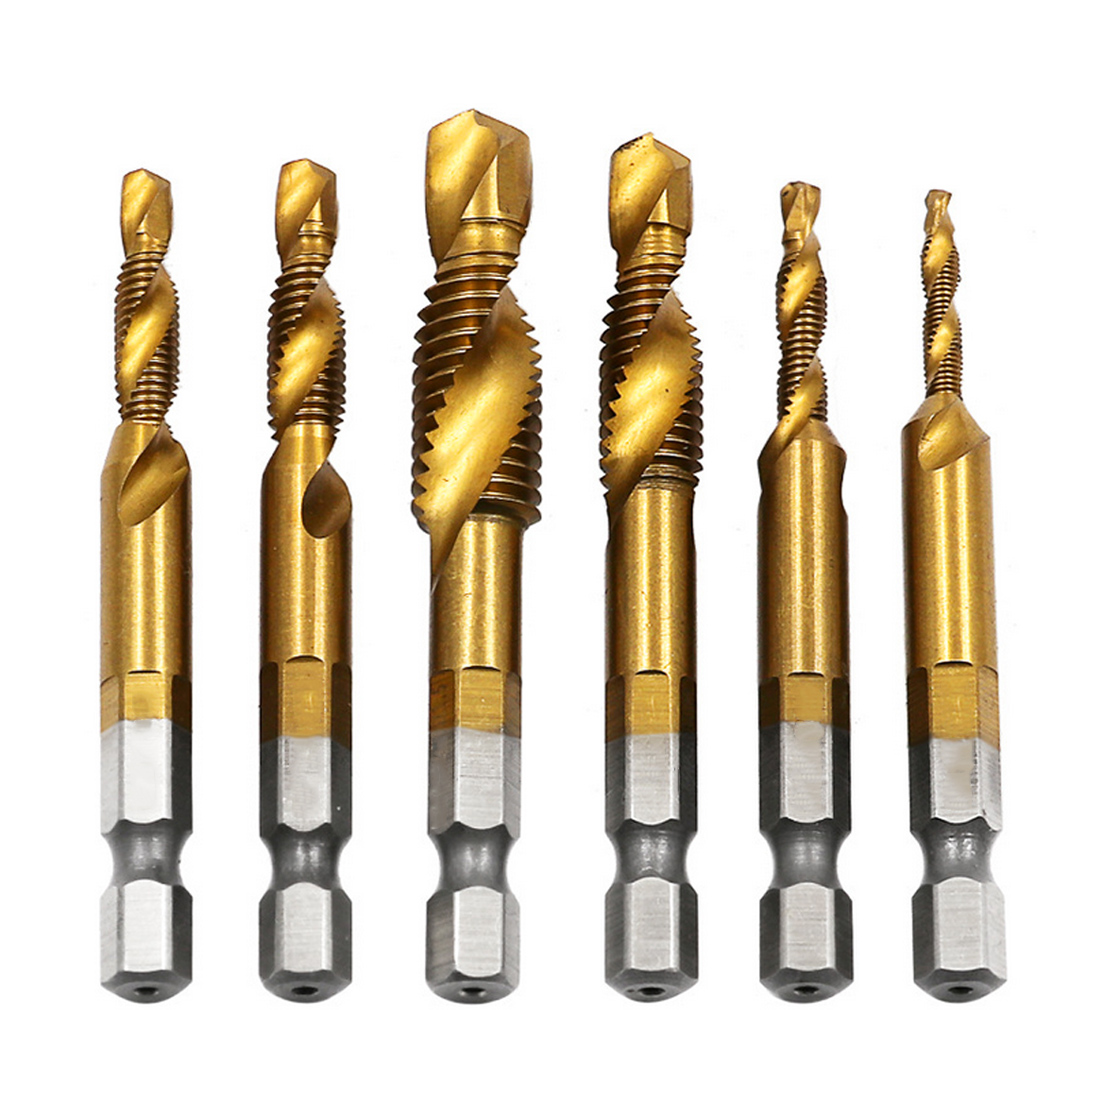 1pcs Hand Screw Thread Metric Taps Drill Bits M3 M4 M5 M6 M8 M10 Hex Shank HSS Tap Drill Hand Tools